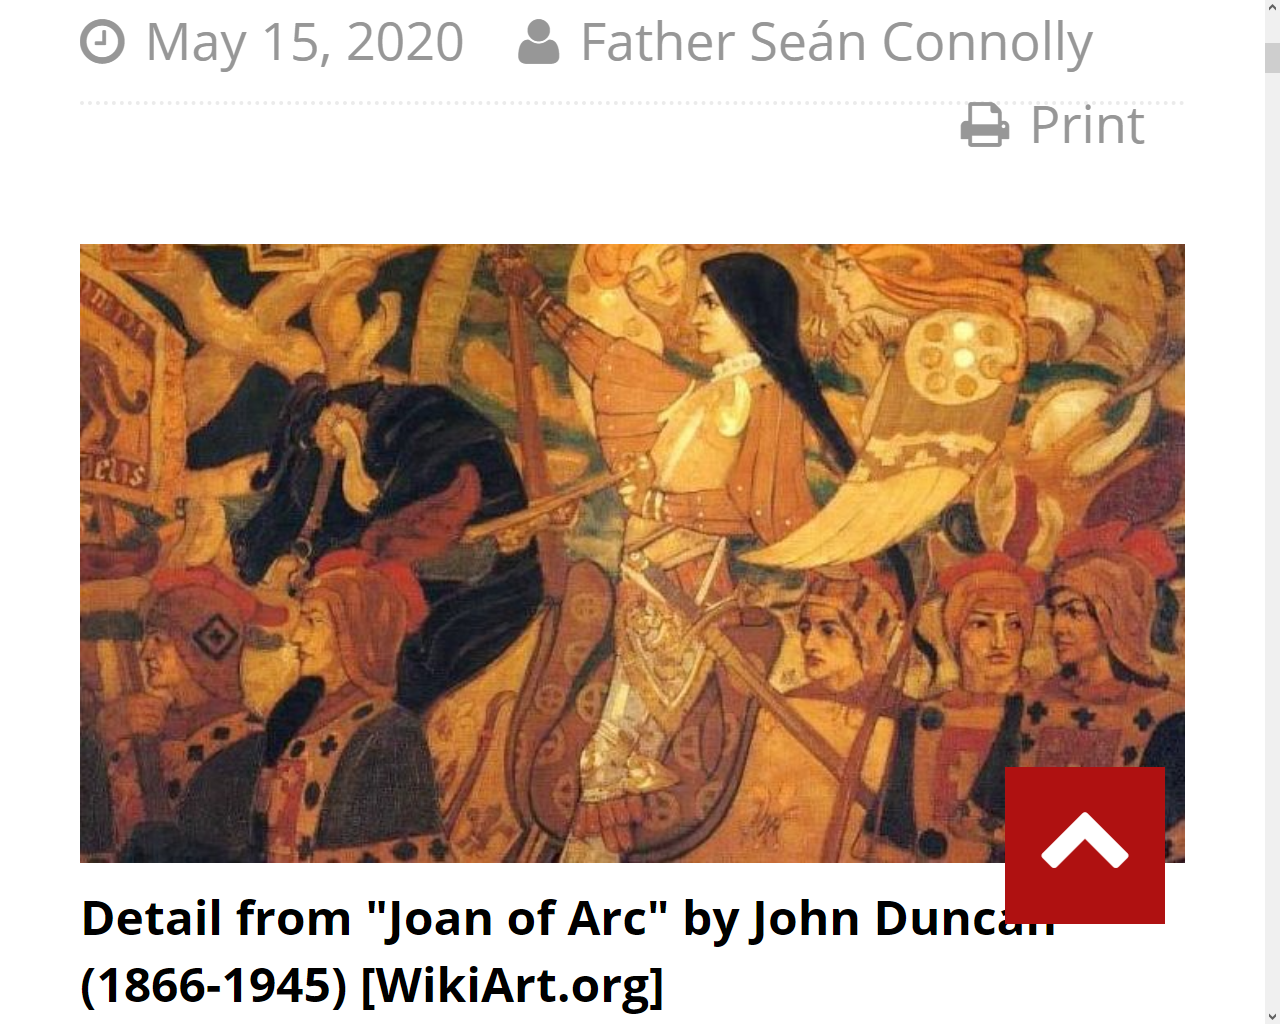 https://www.catholicworldreport.com/2020/05/15/recalling-the-glory-of-st-joan-of-arc-on-the-100th-anniversary-of-her-canonization/